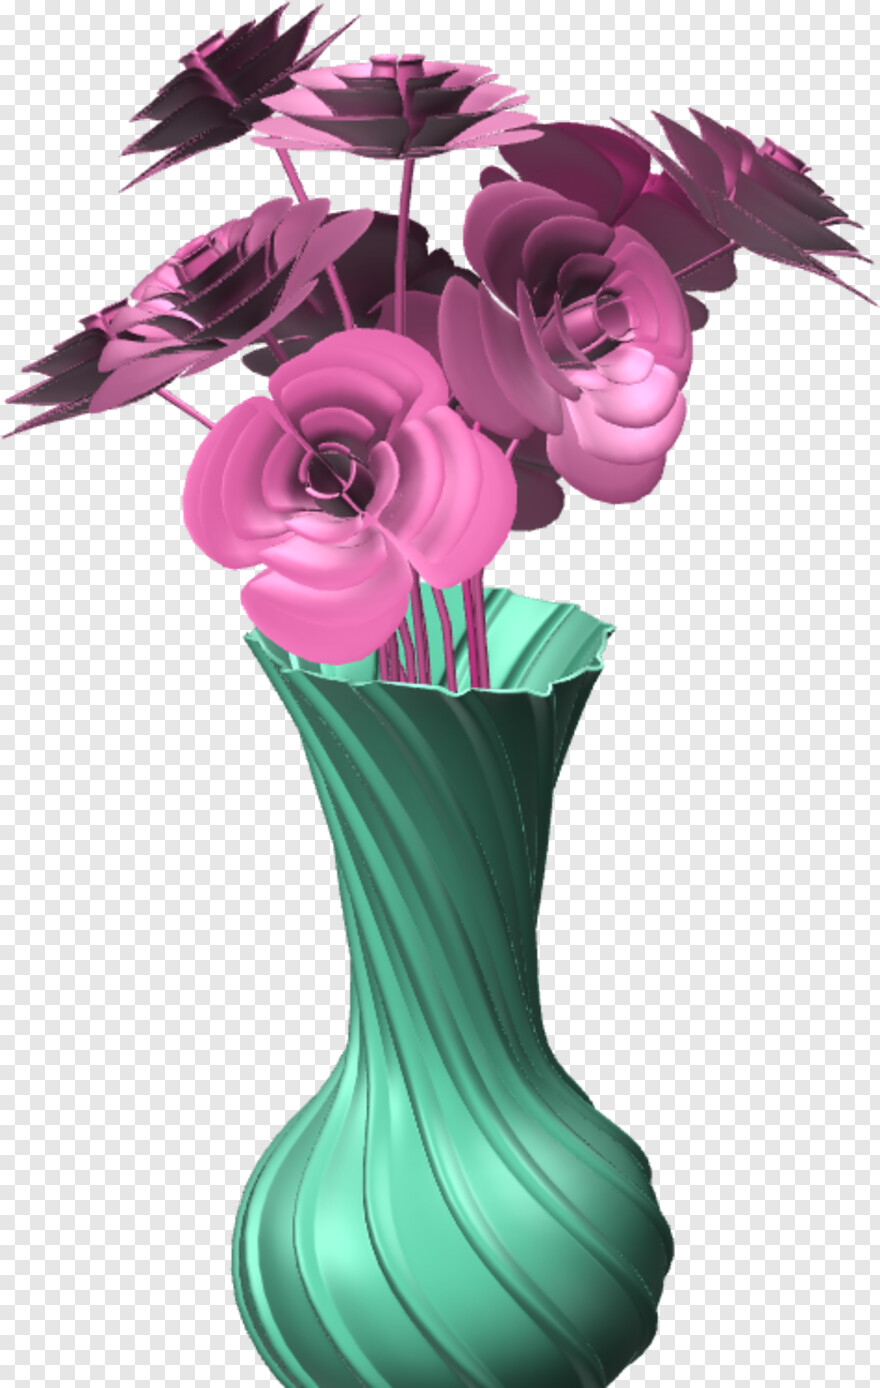 Beautiful Flower Vase With Flowers Artificial Flower Hd Png Download 475x749 10269539 Png Image Pngjoy